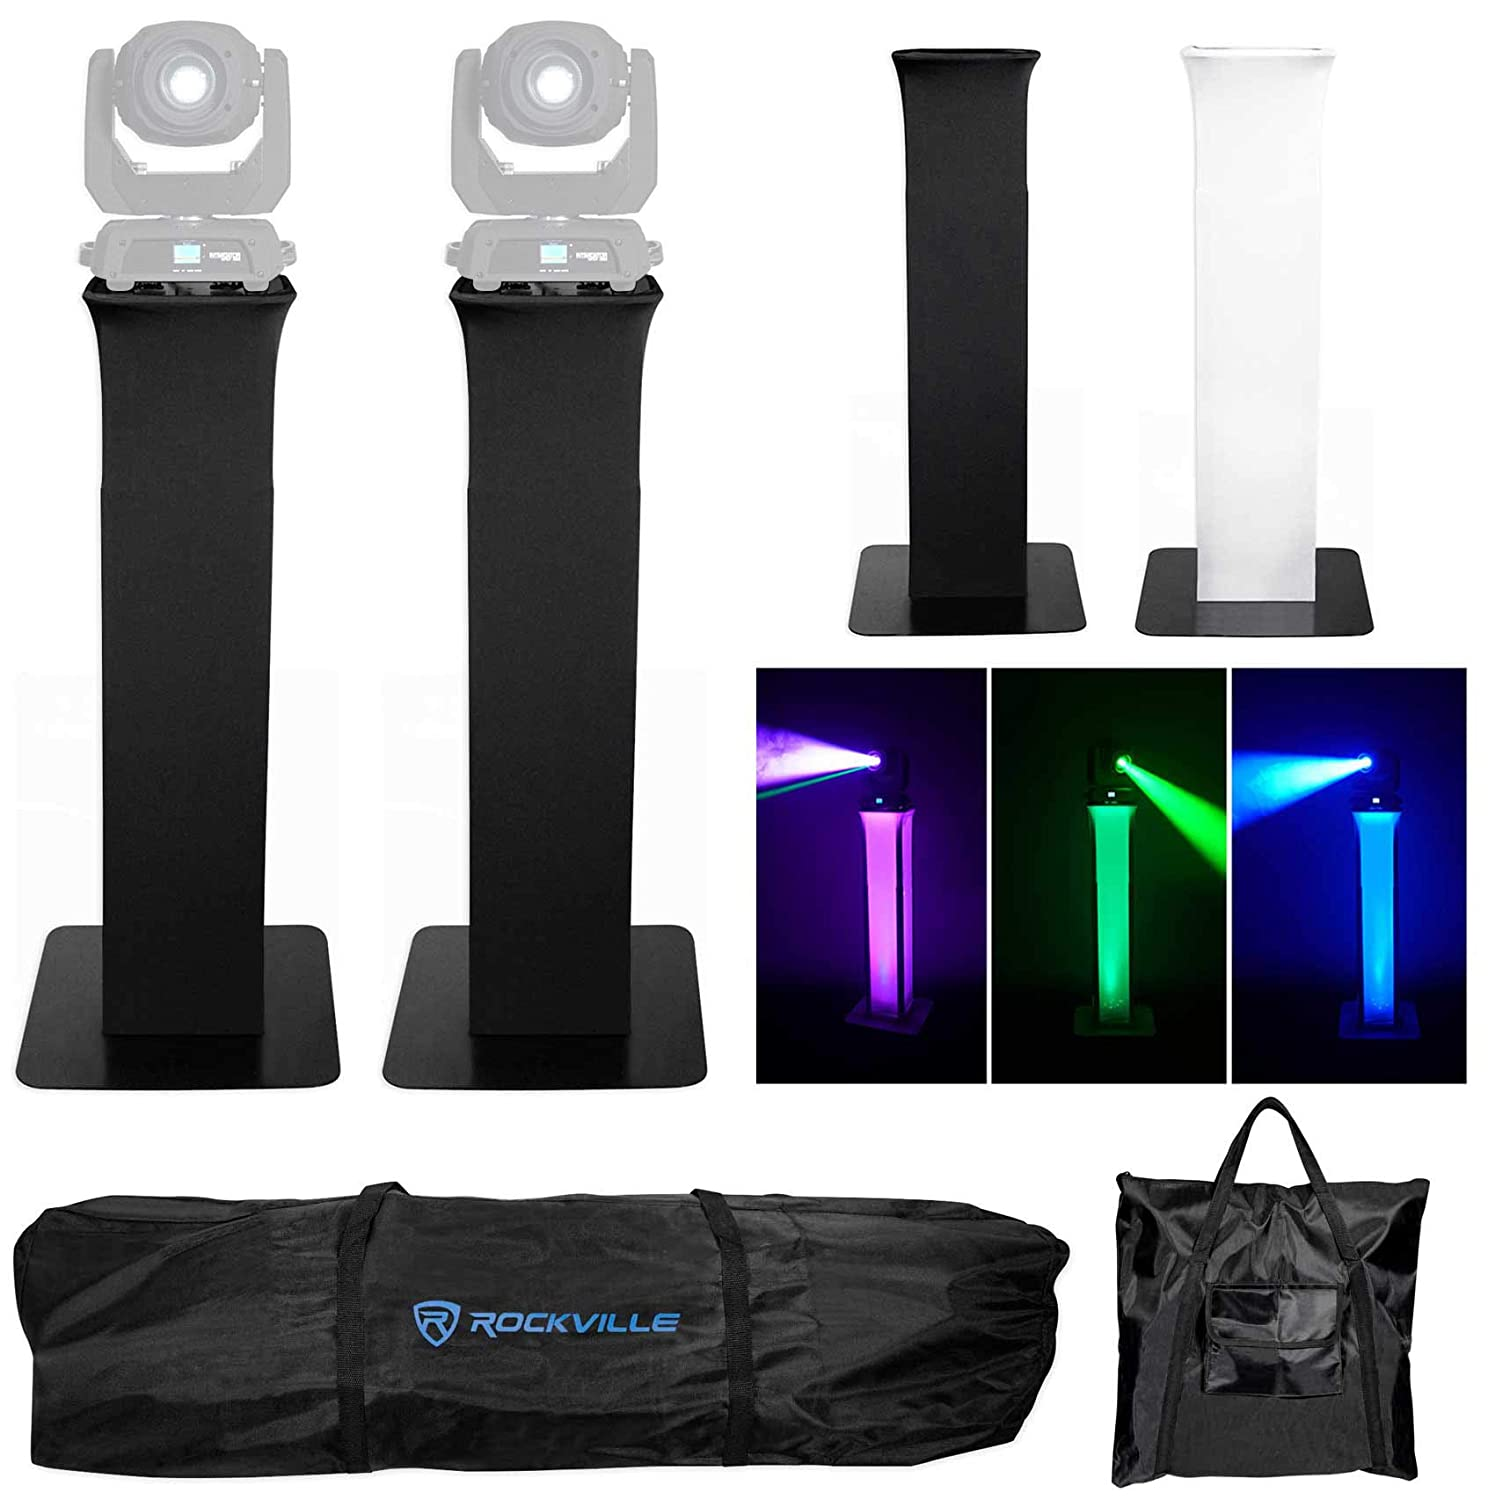 2 Rockville RTP32B Totem Style DJ Speaker Stands w/Black+White Scrims+Carry Bags (2) RTP32B